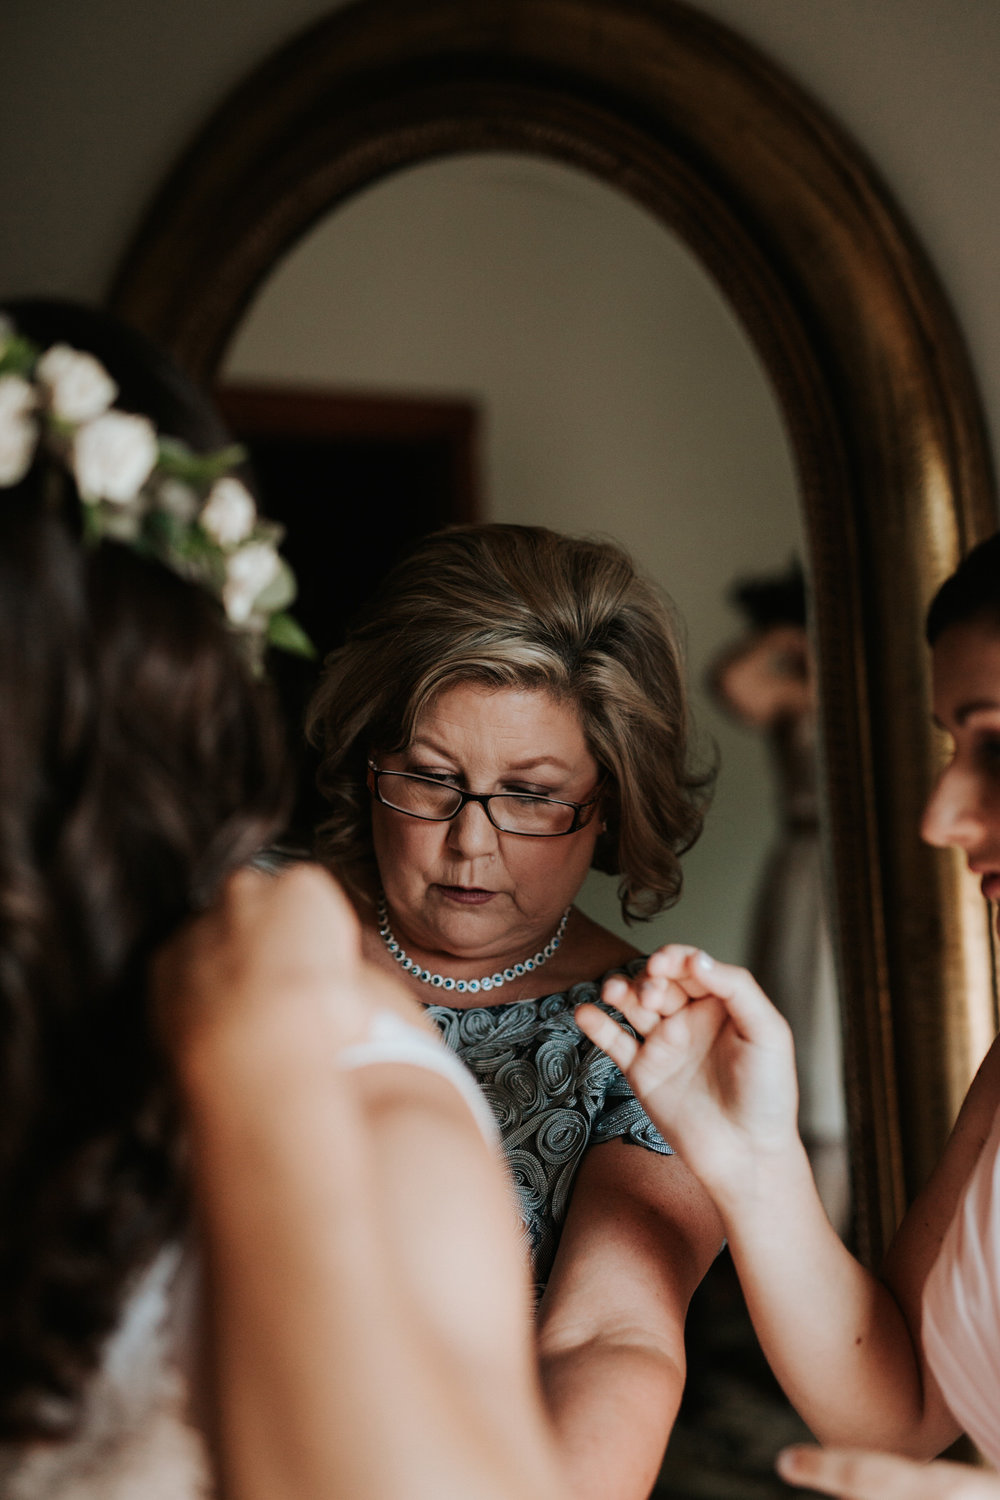 Bride getting ready for wedding at Thurman's mansion